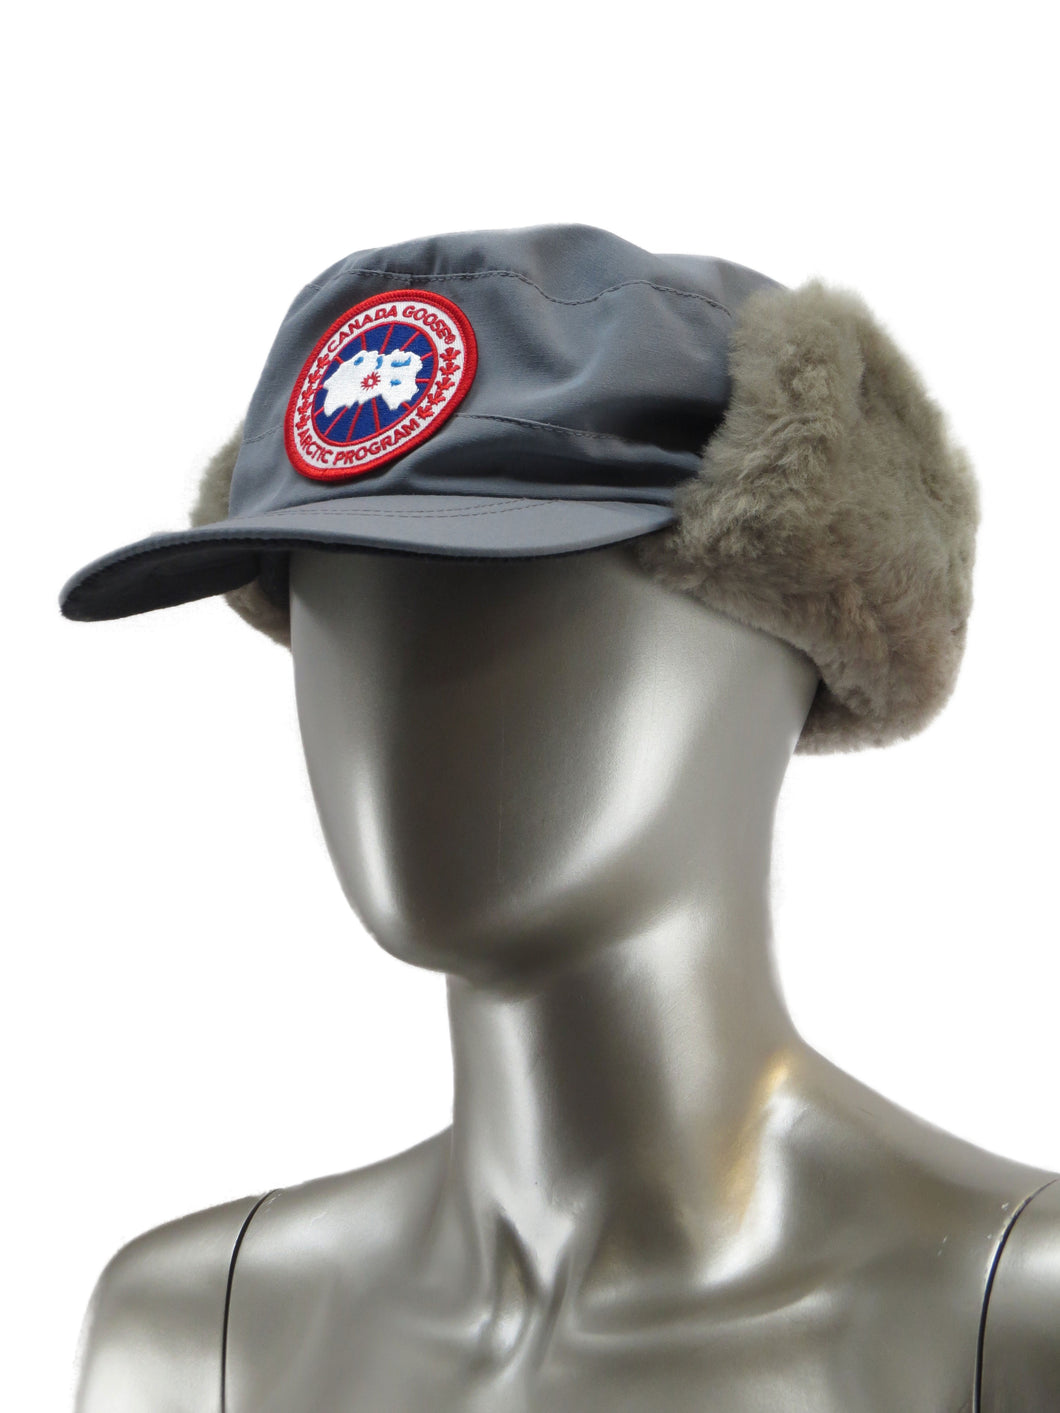 Canada Goose | 5179M | Classique Hat with Shearling | Mid Grey